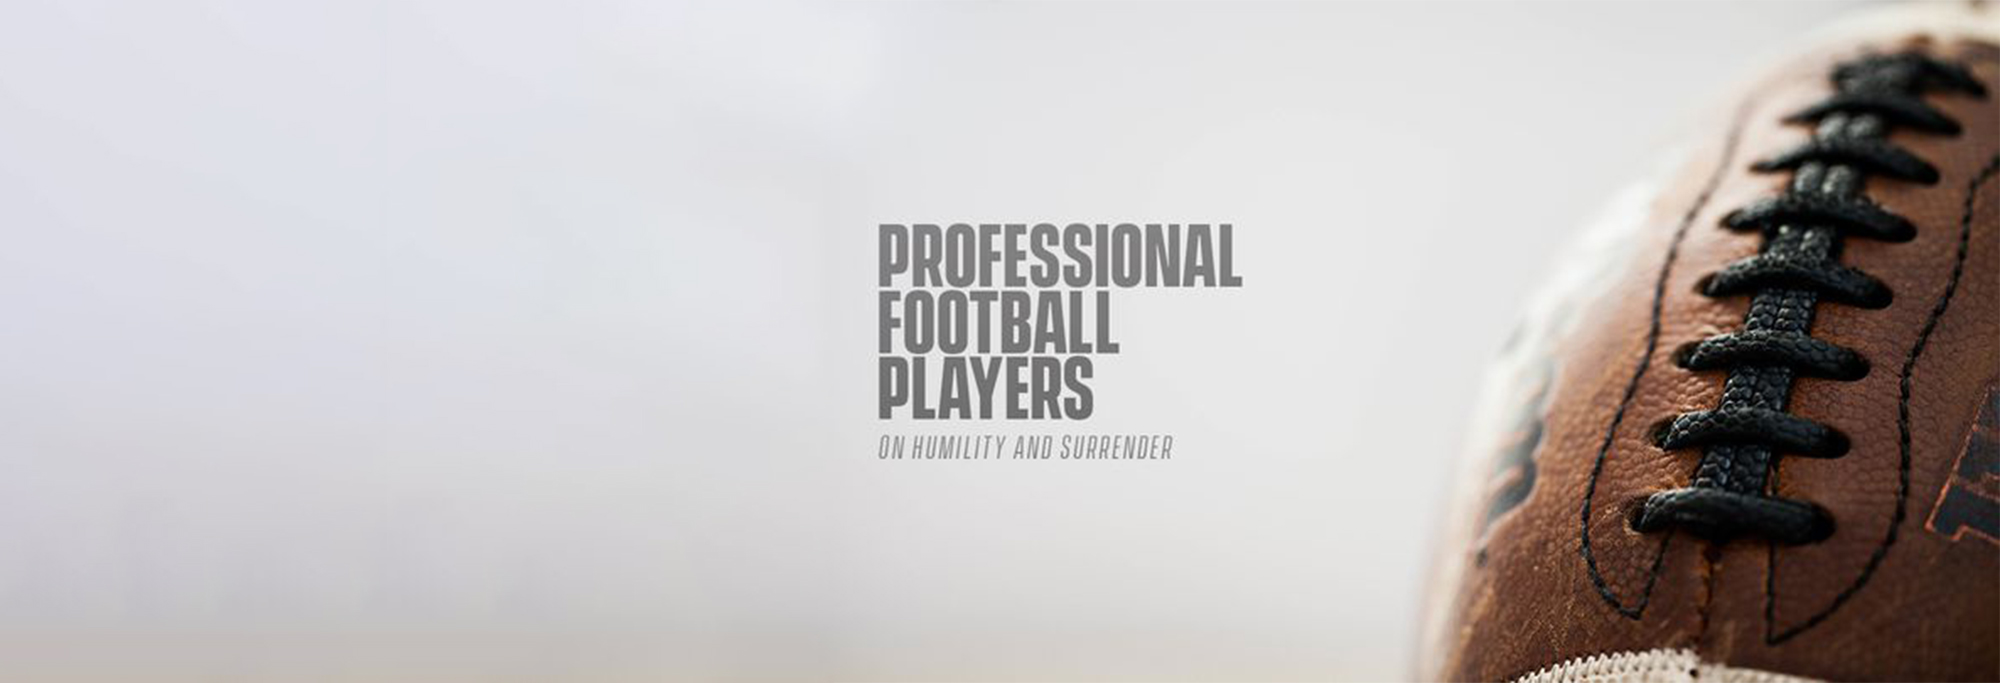 Daily Devotional - Professional Football Players On Humility & Surrender